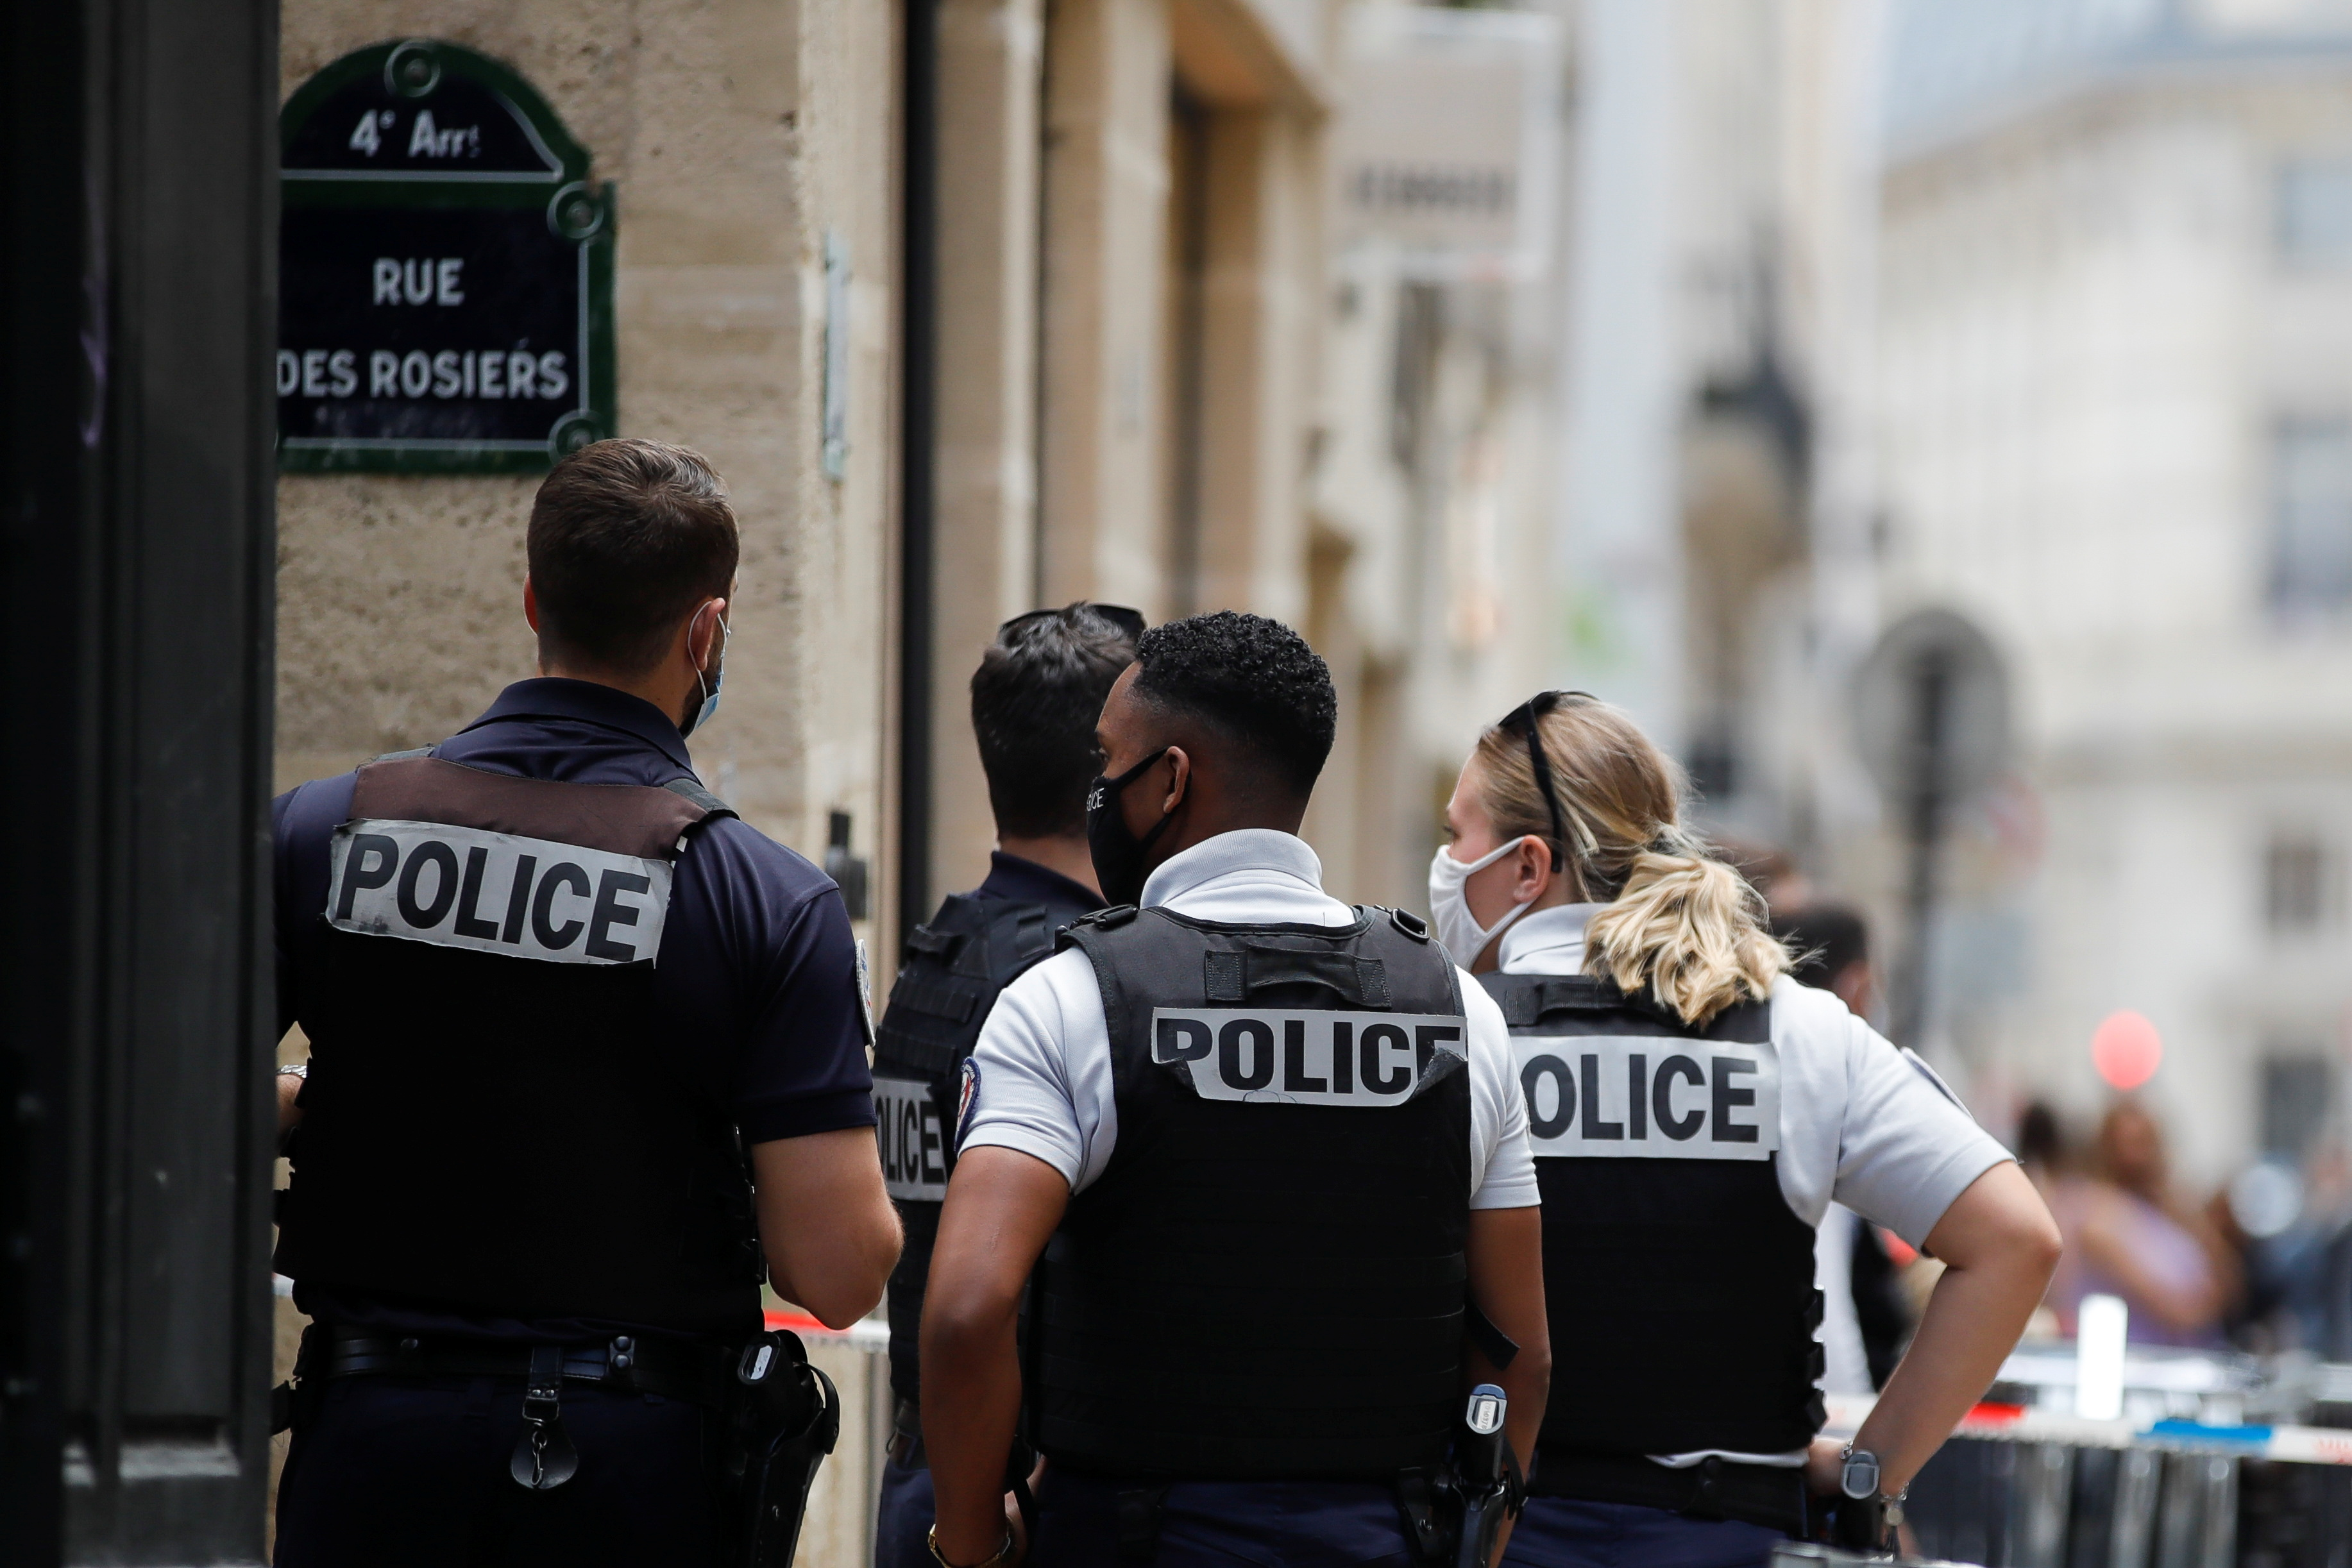 Police officers stand next to Dinh Van jewelry store after a robbery in central Paris, France July 30, 2021. REUTERS/Sarah Meyssonnier